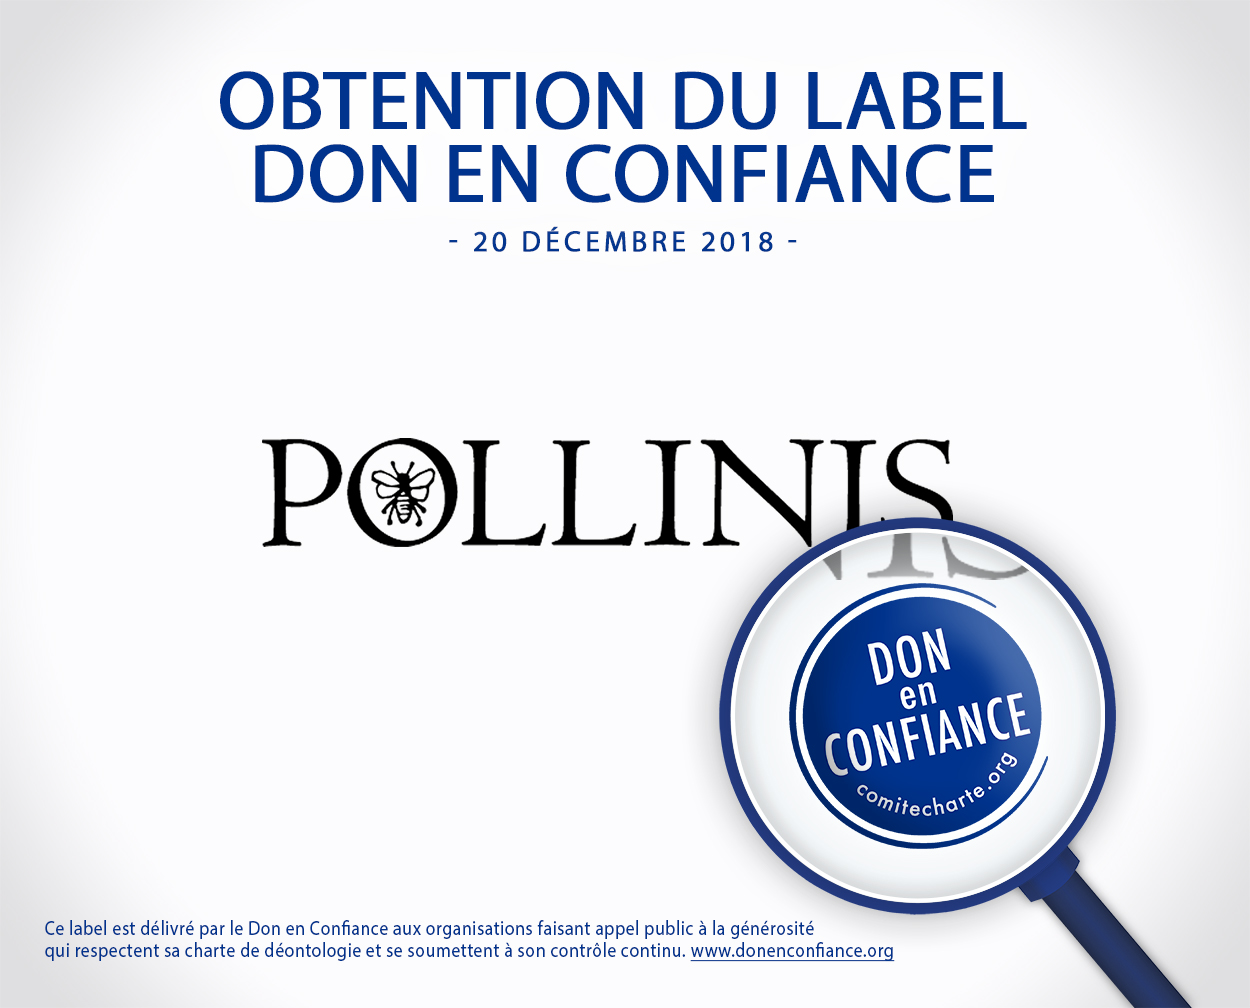 obtention_label_Pollinis_20181220